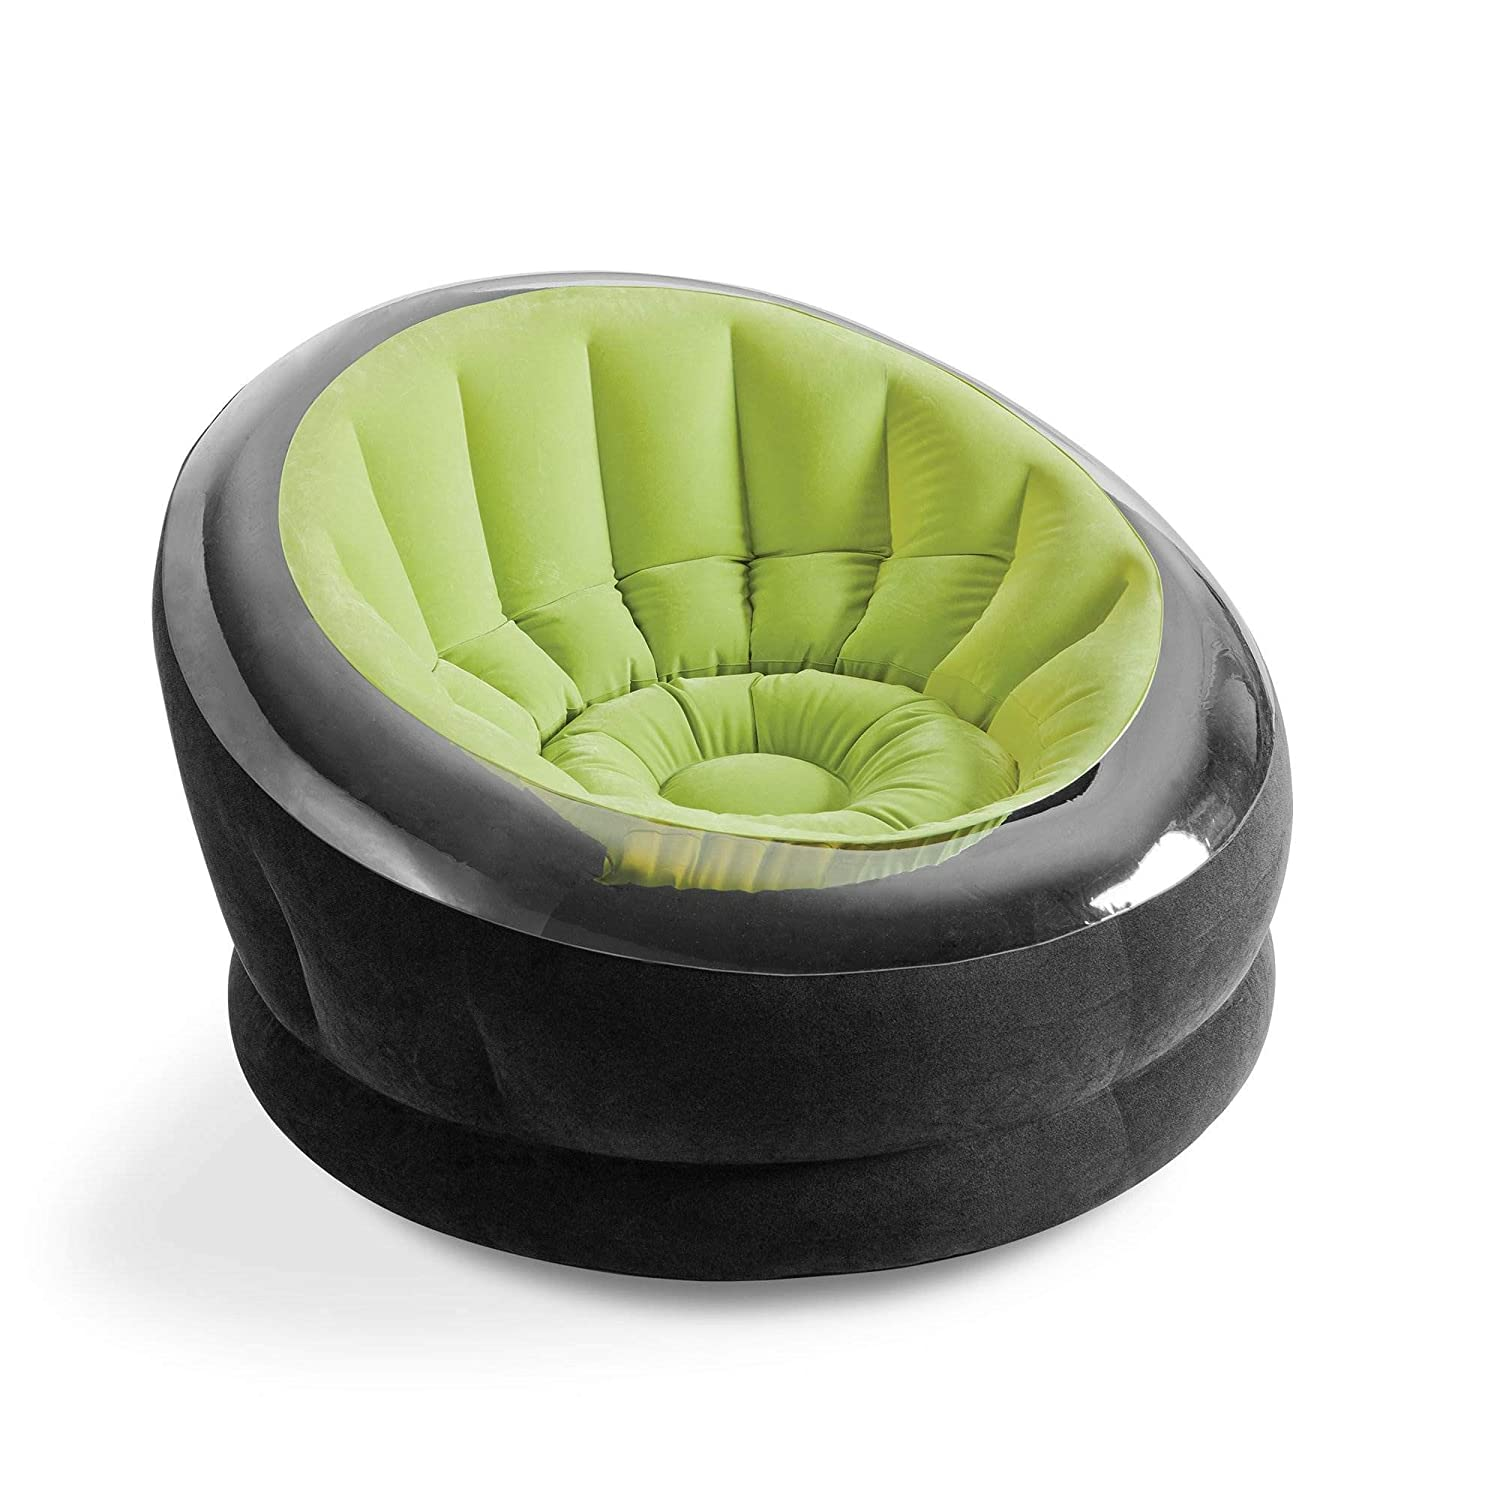 Incredible Amazon Com Intex Empire Inflatable Lounge Chair Green Onthecornerstone Fun Painted Chair Ideas Images Onthecornerstoneorg